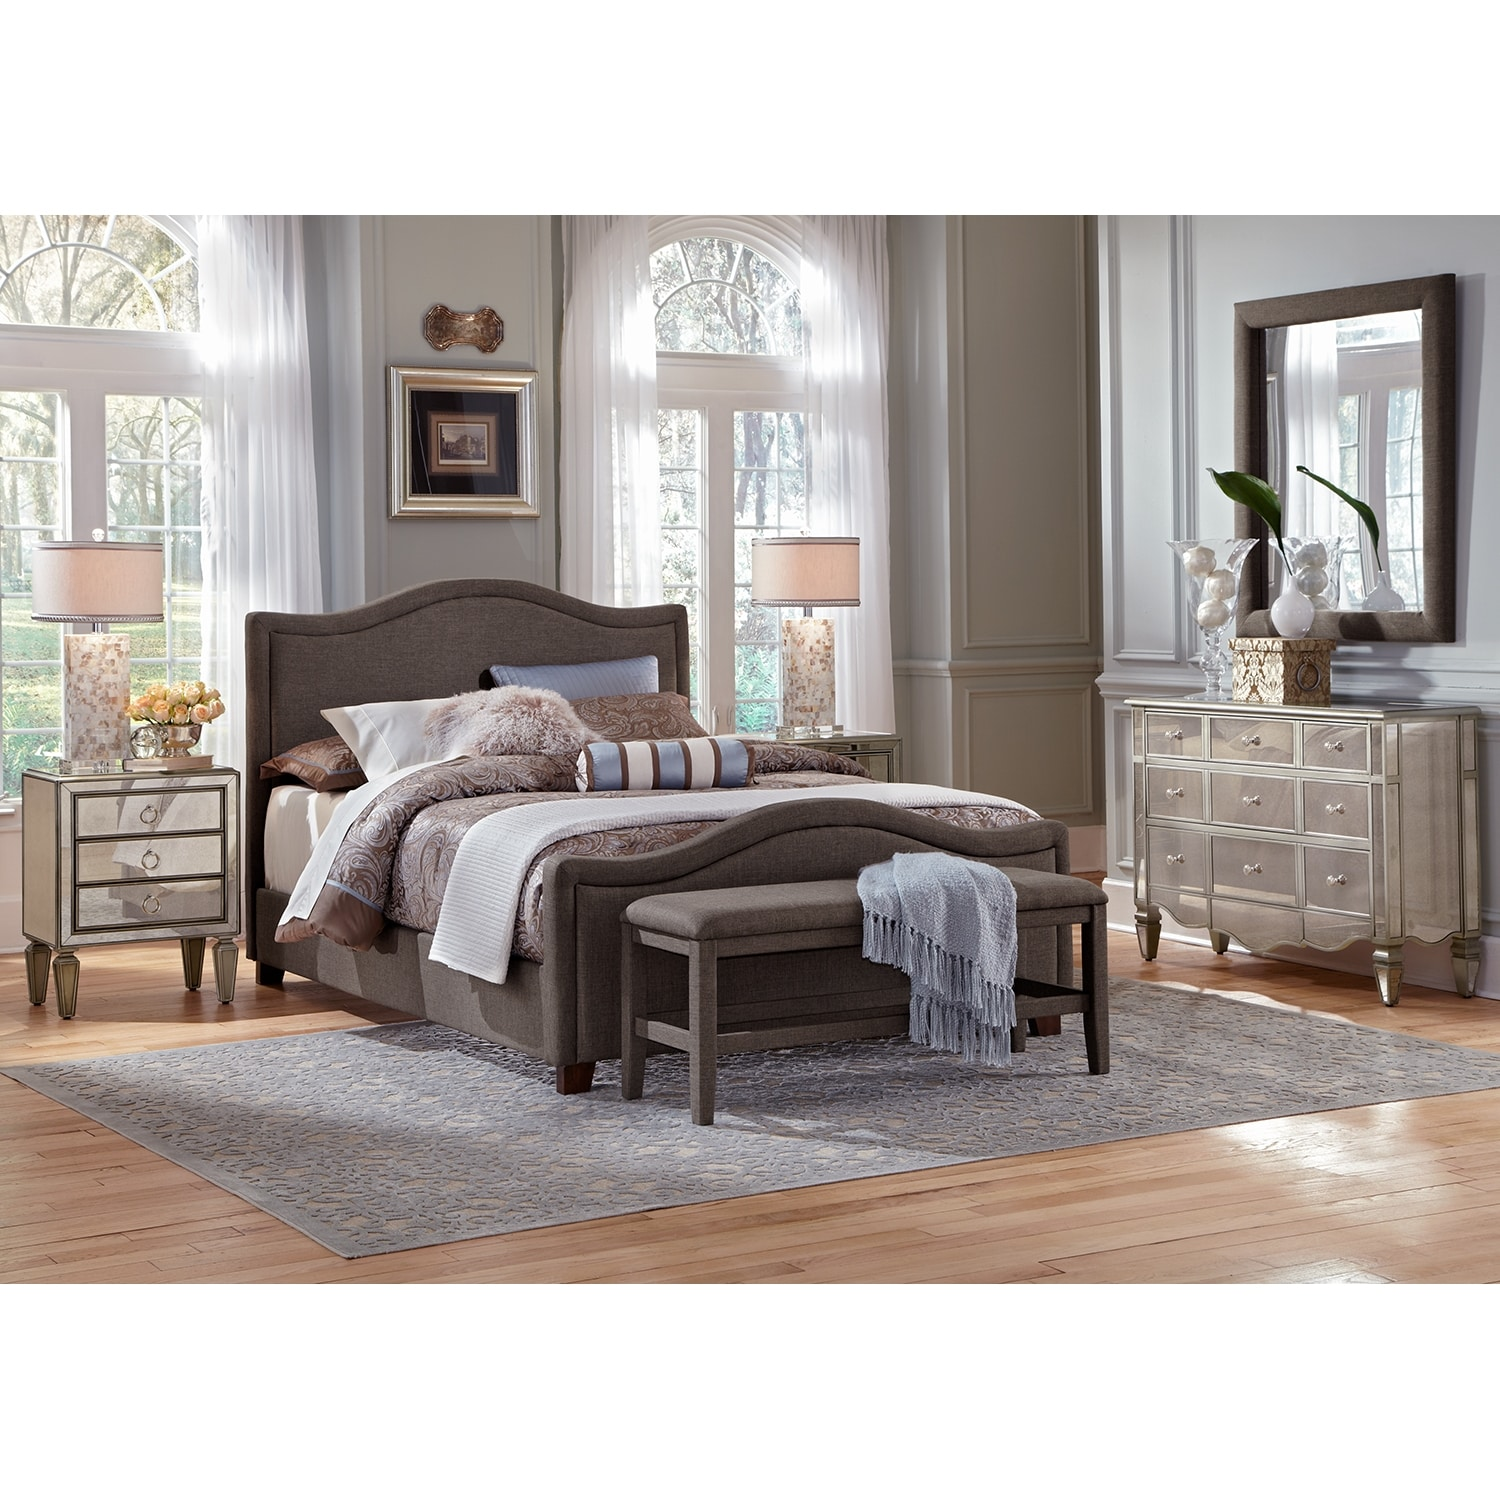 furnishings for every room online and store furniture